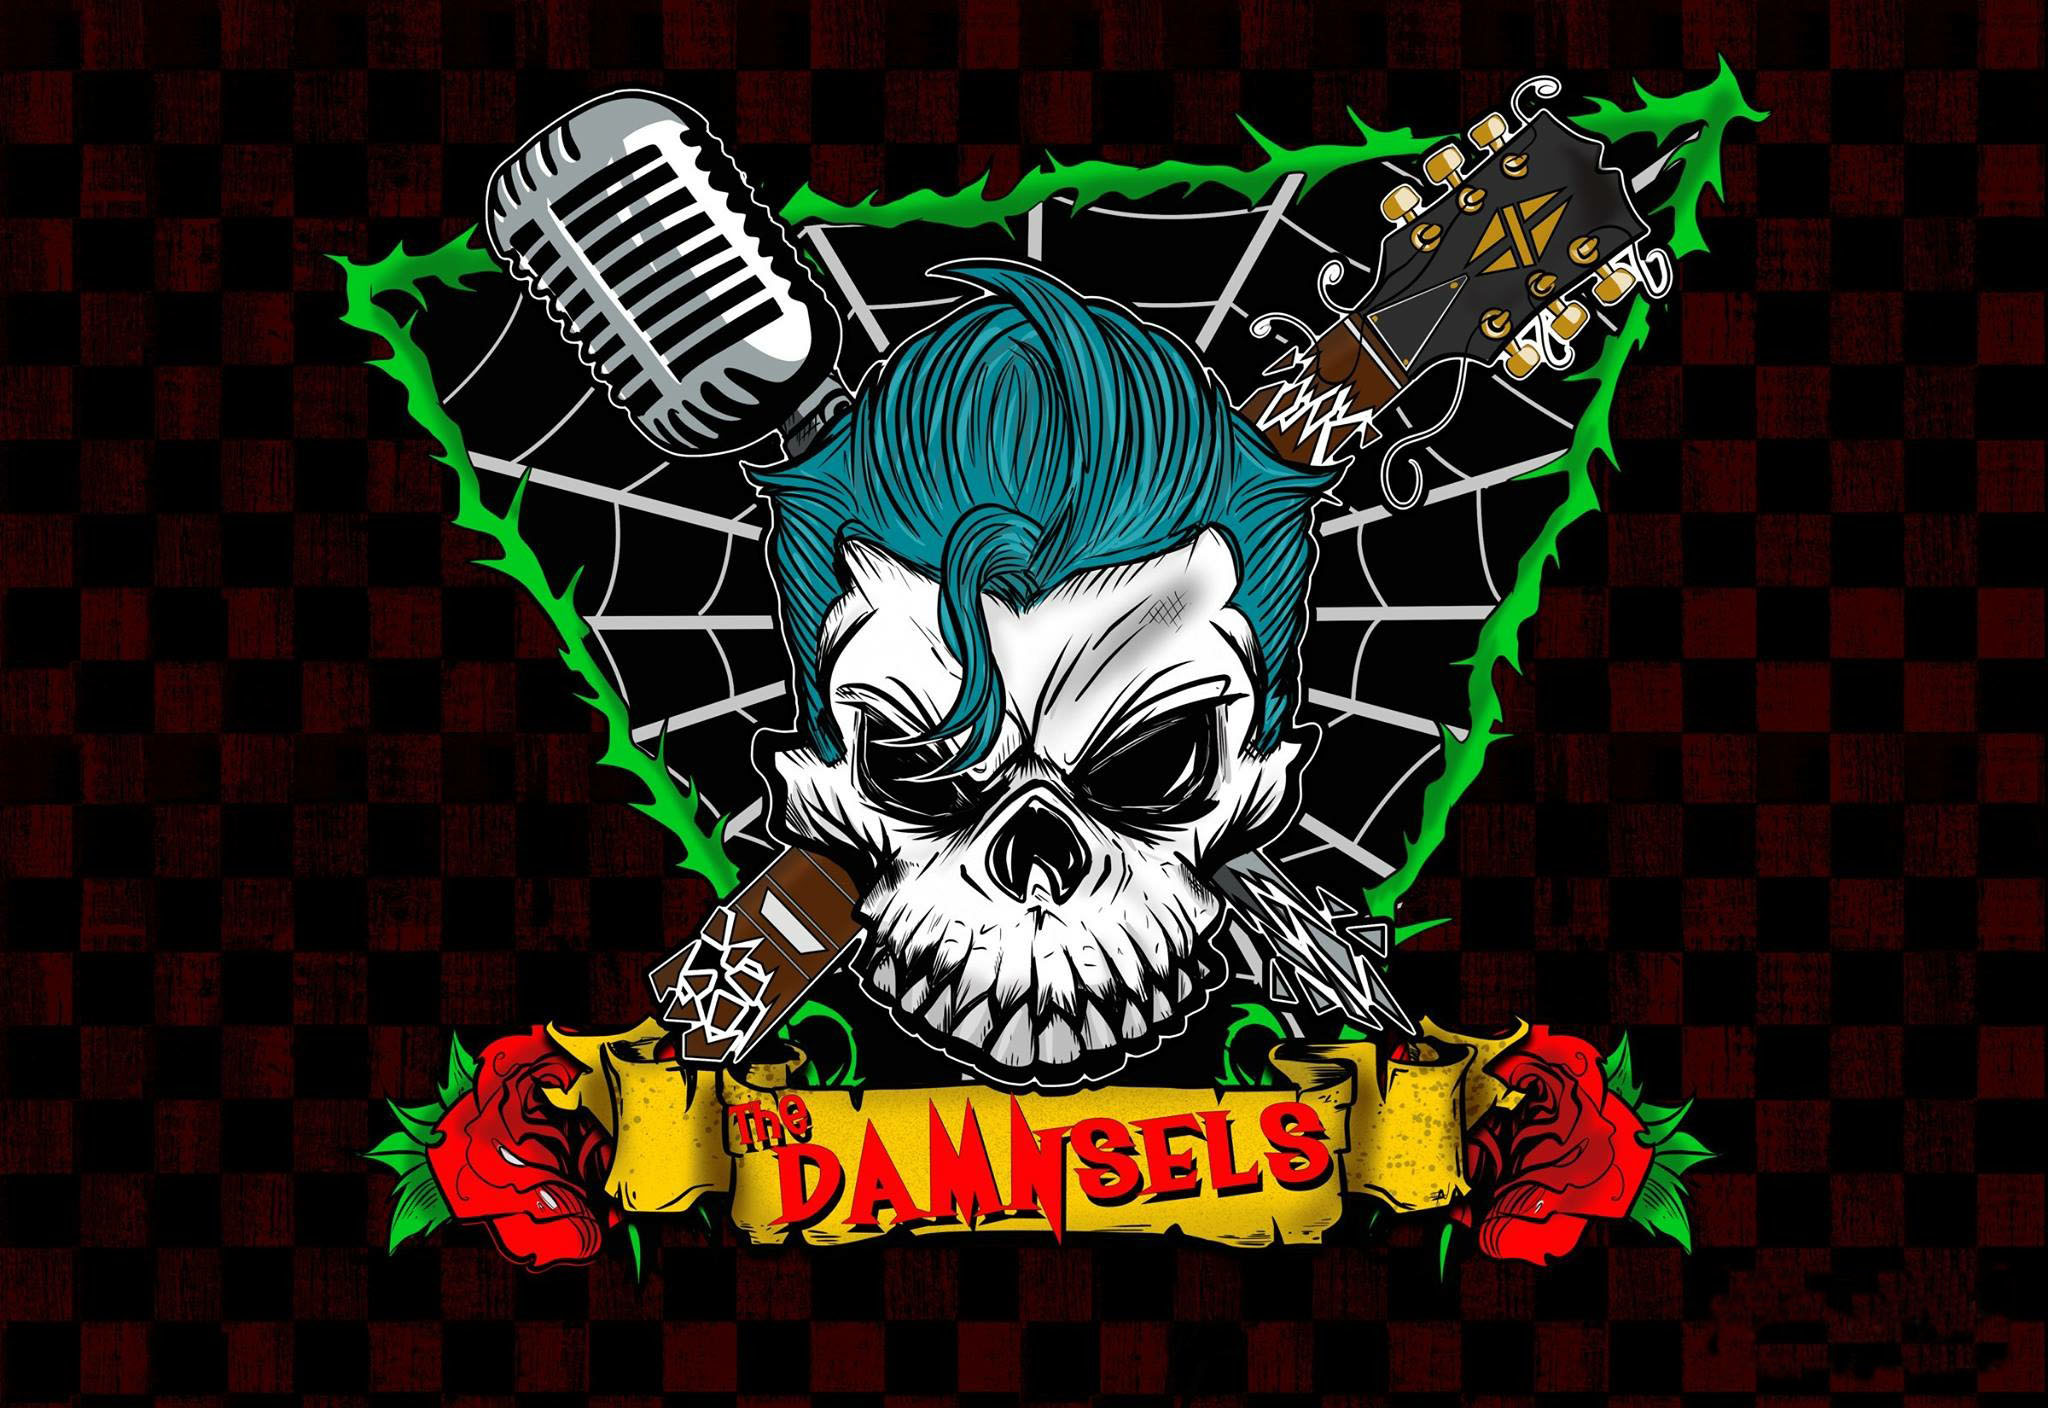 The Damnsels Shop